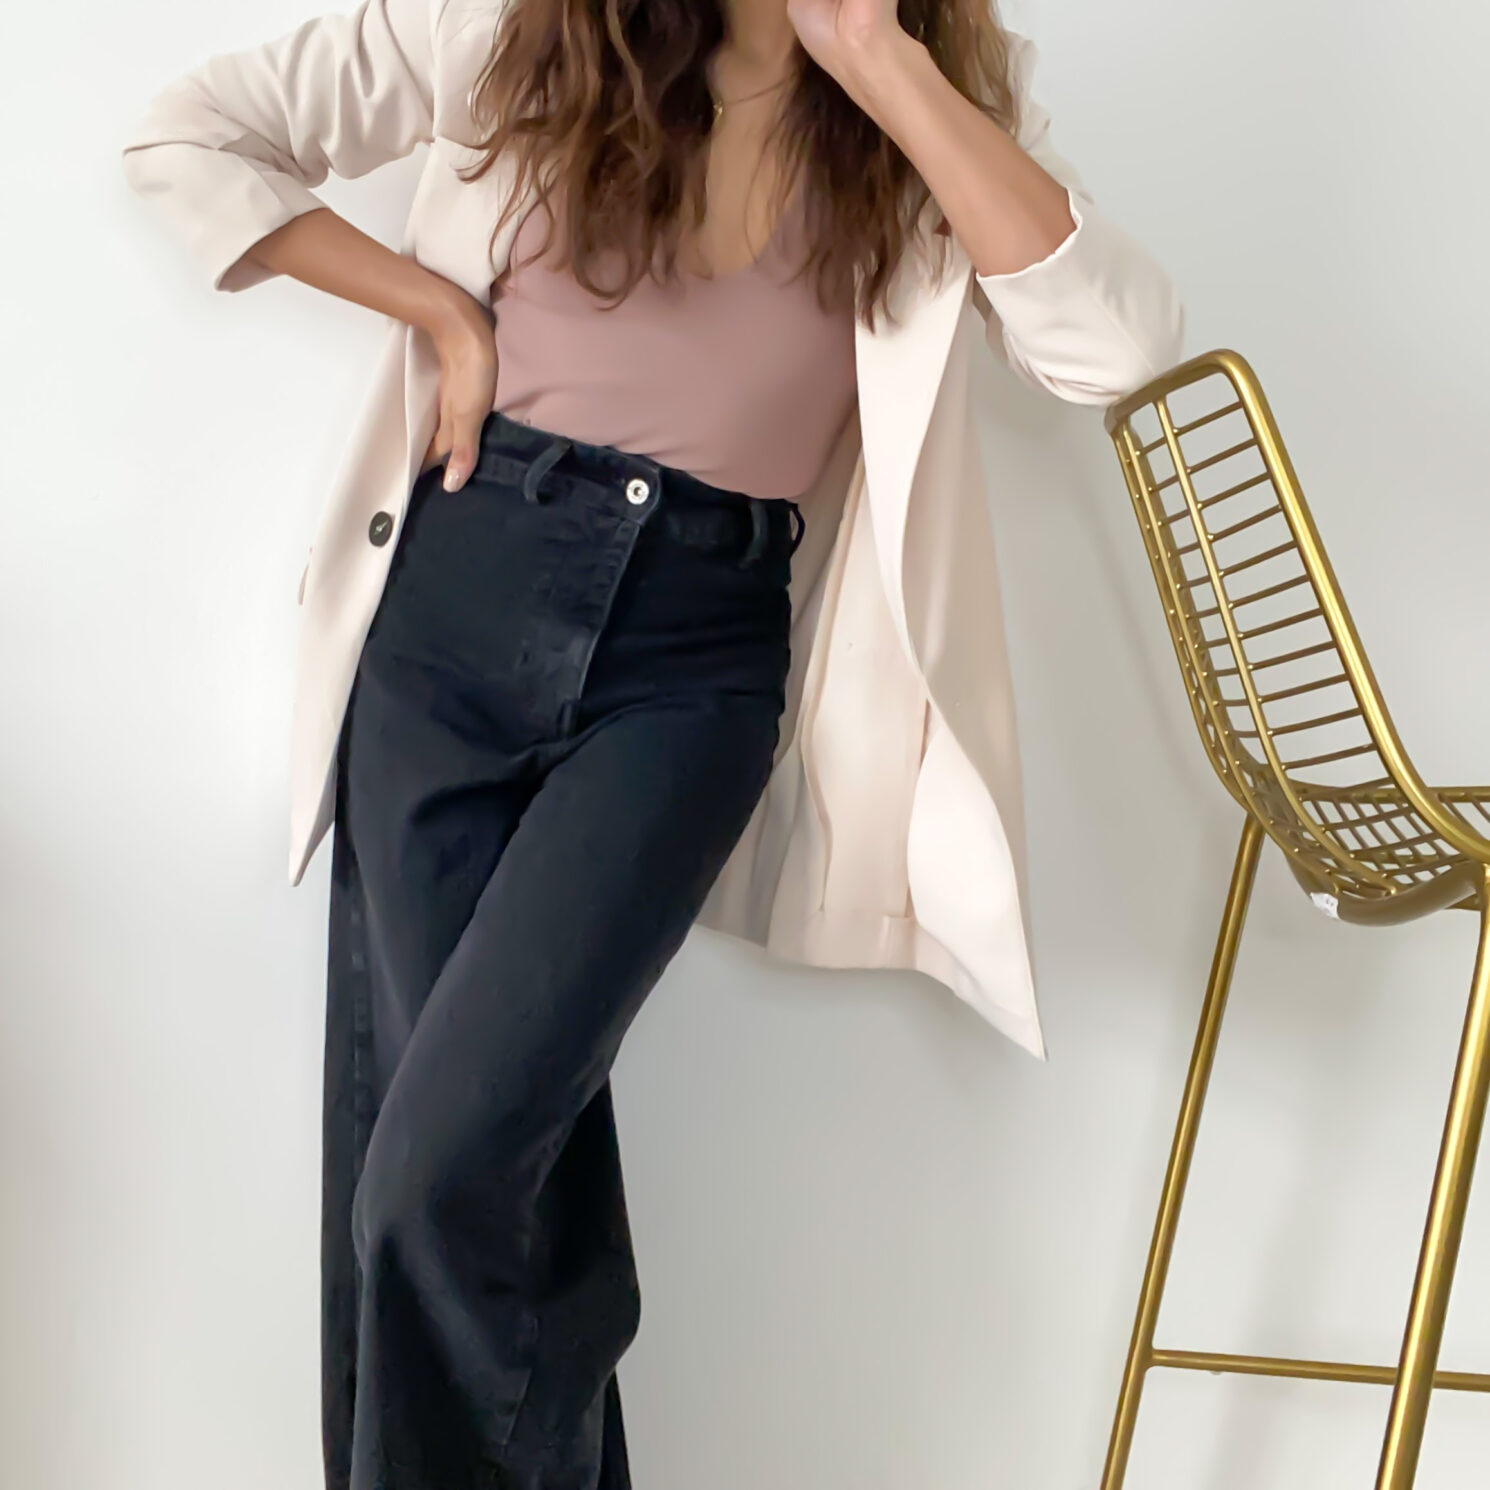 Shop the look - neutral oufit